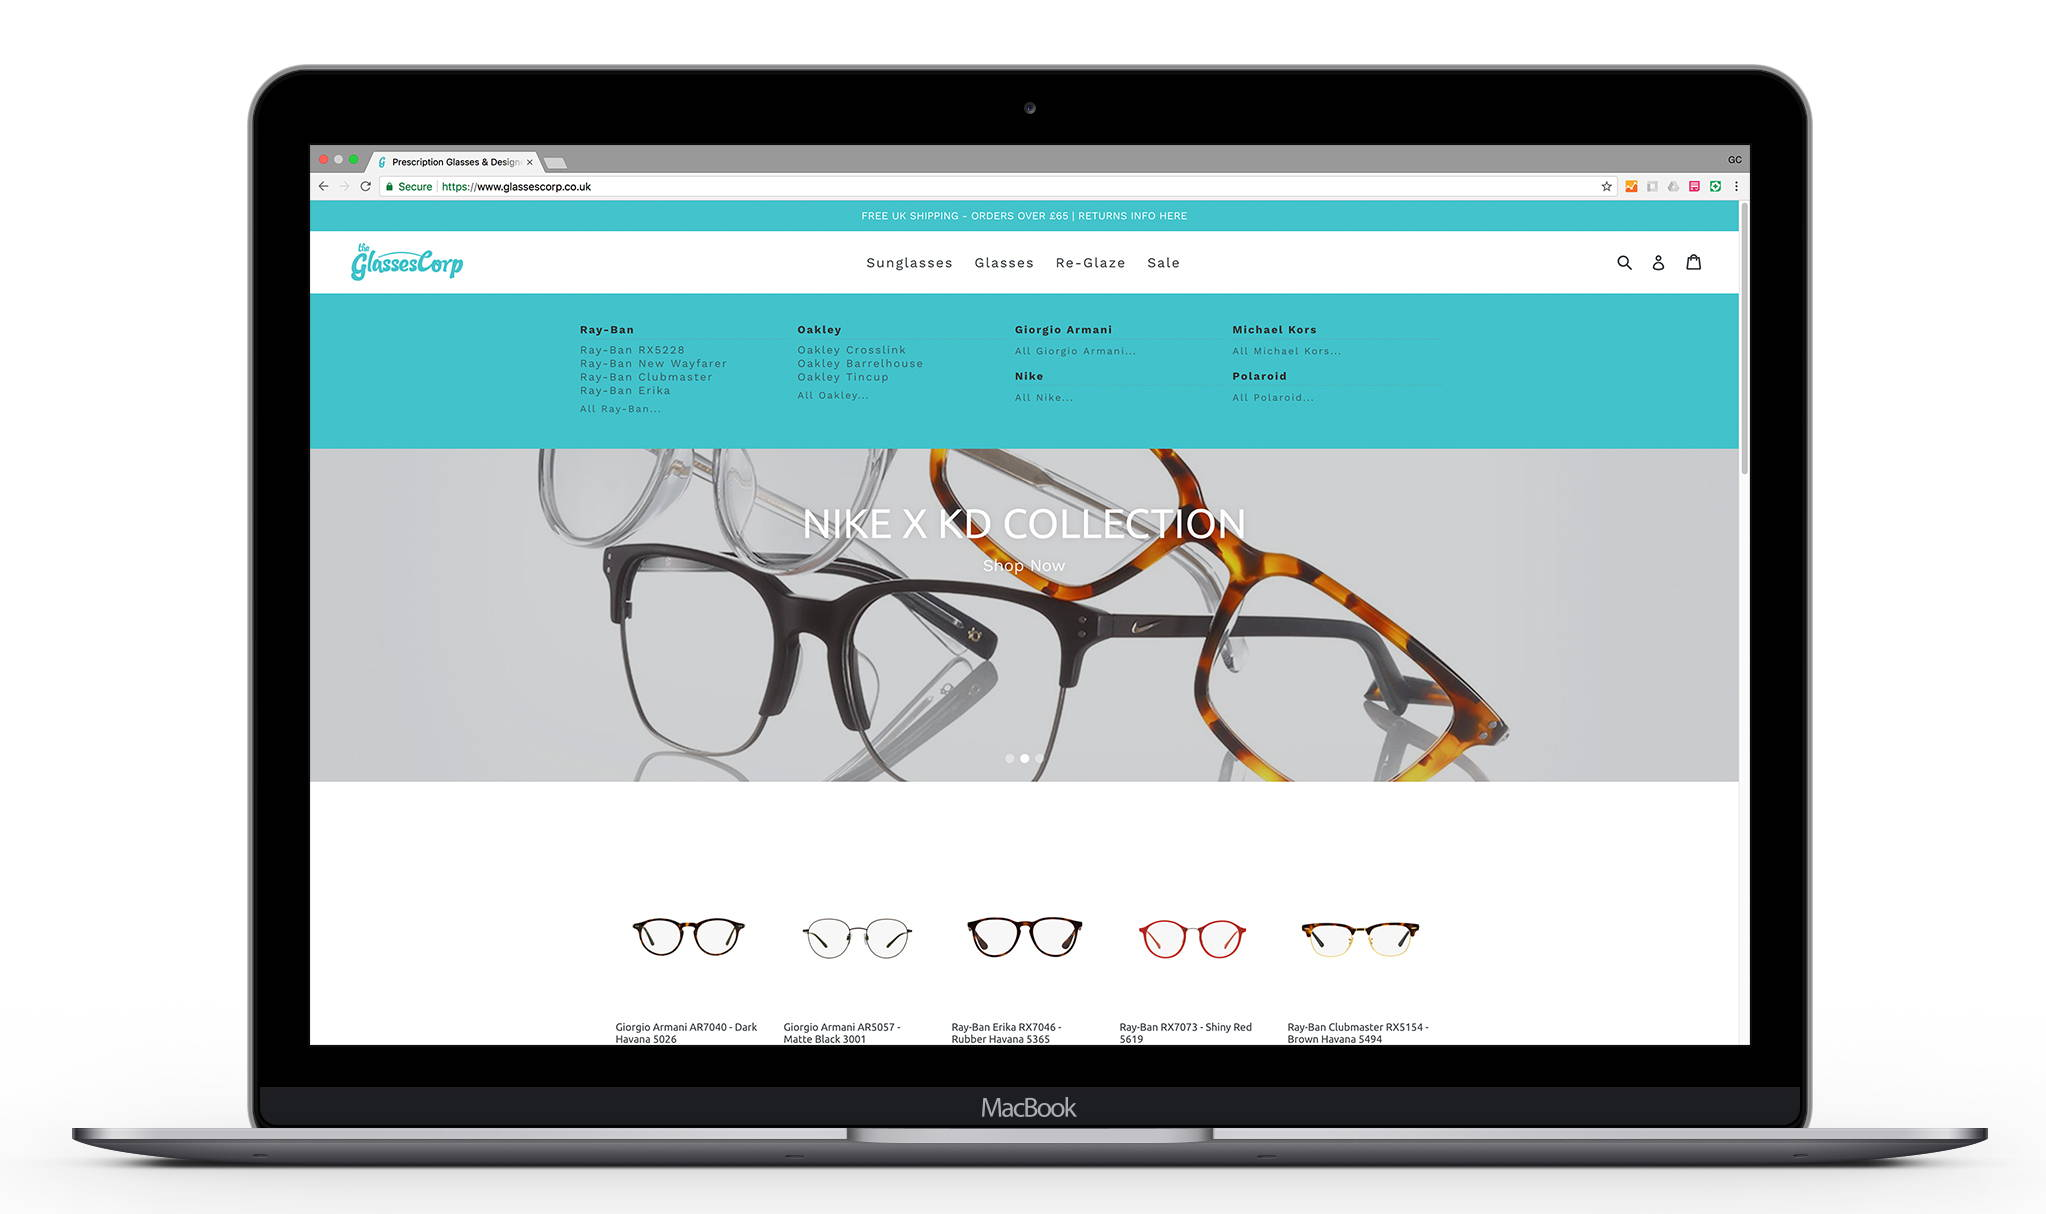 How To Buy Prescription Glasses Online – Glasses Corp